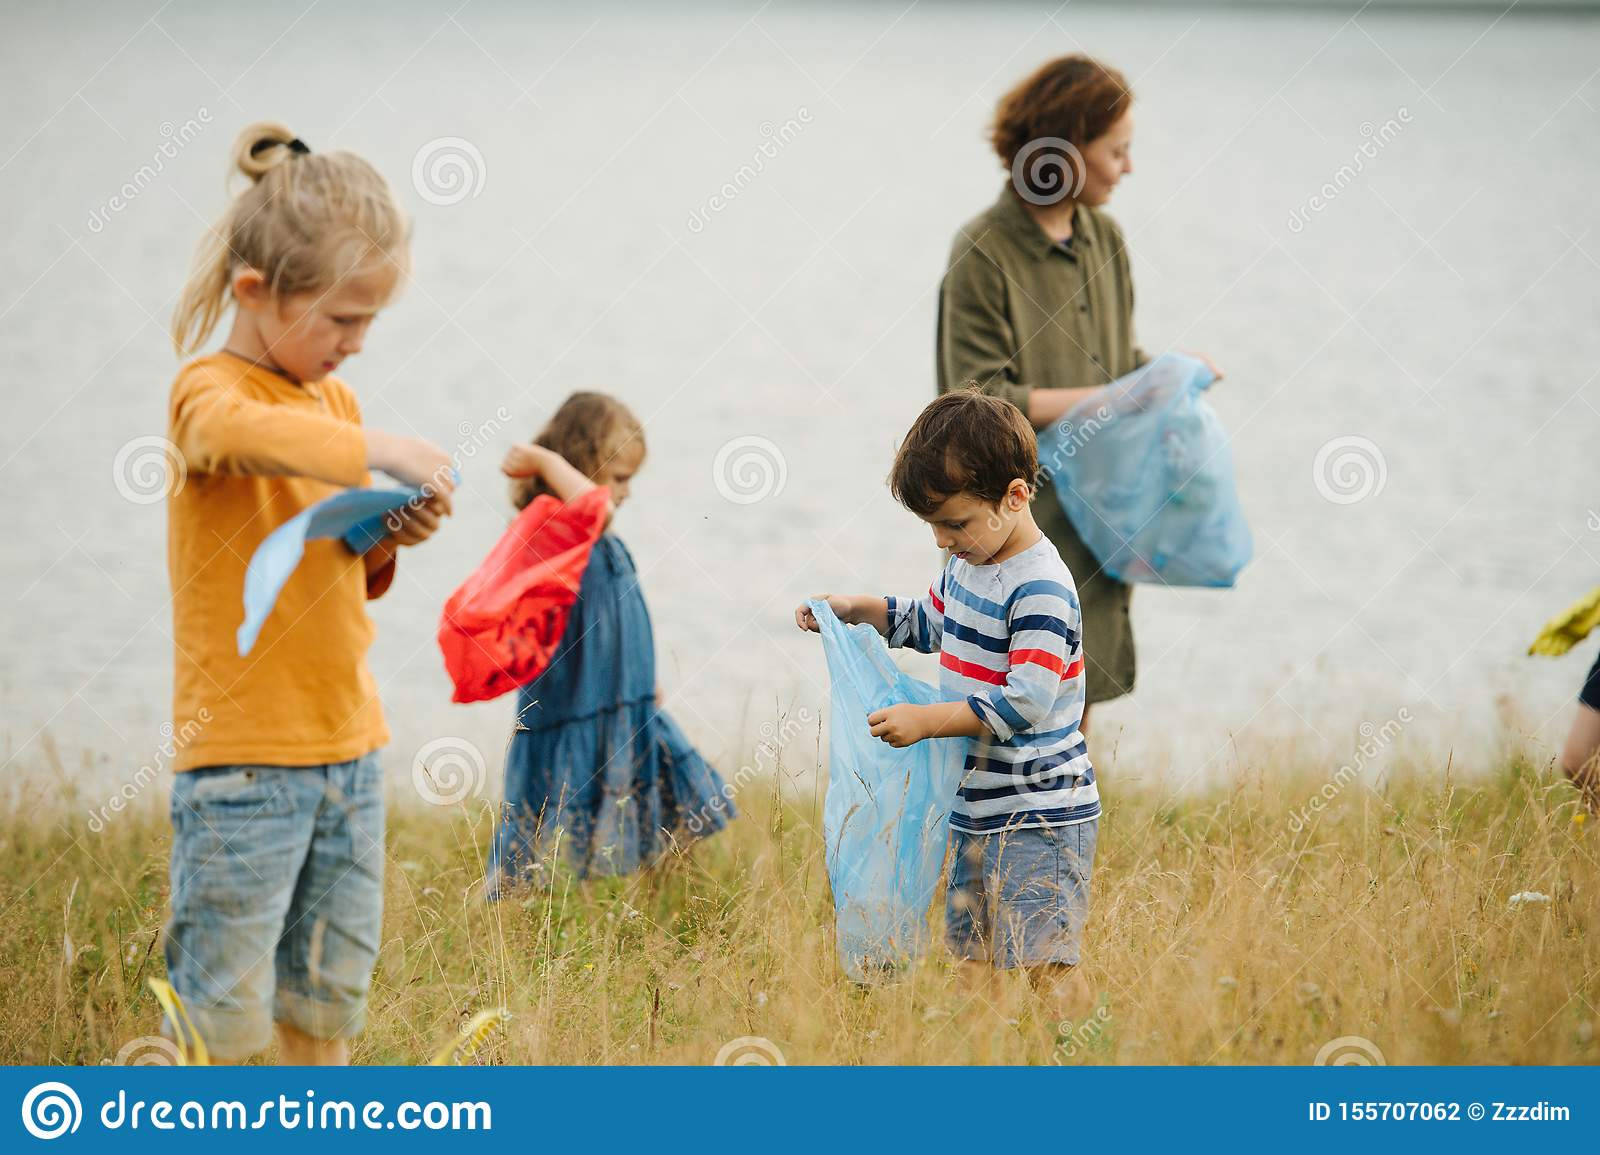 Children collecting water editorial stock image. Image of